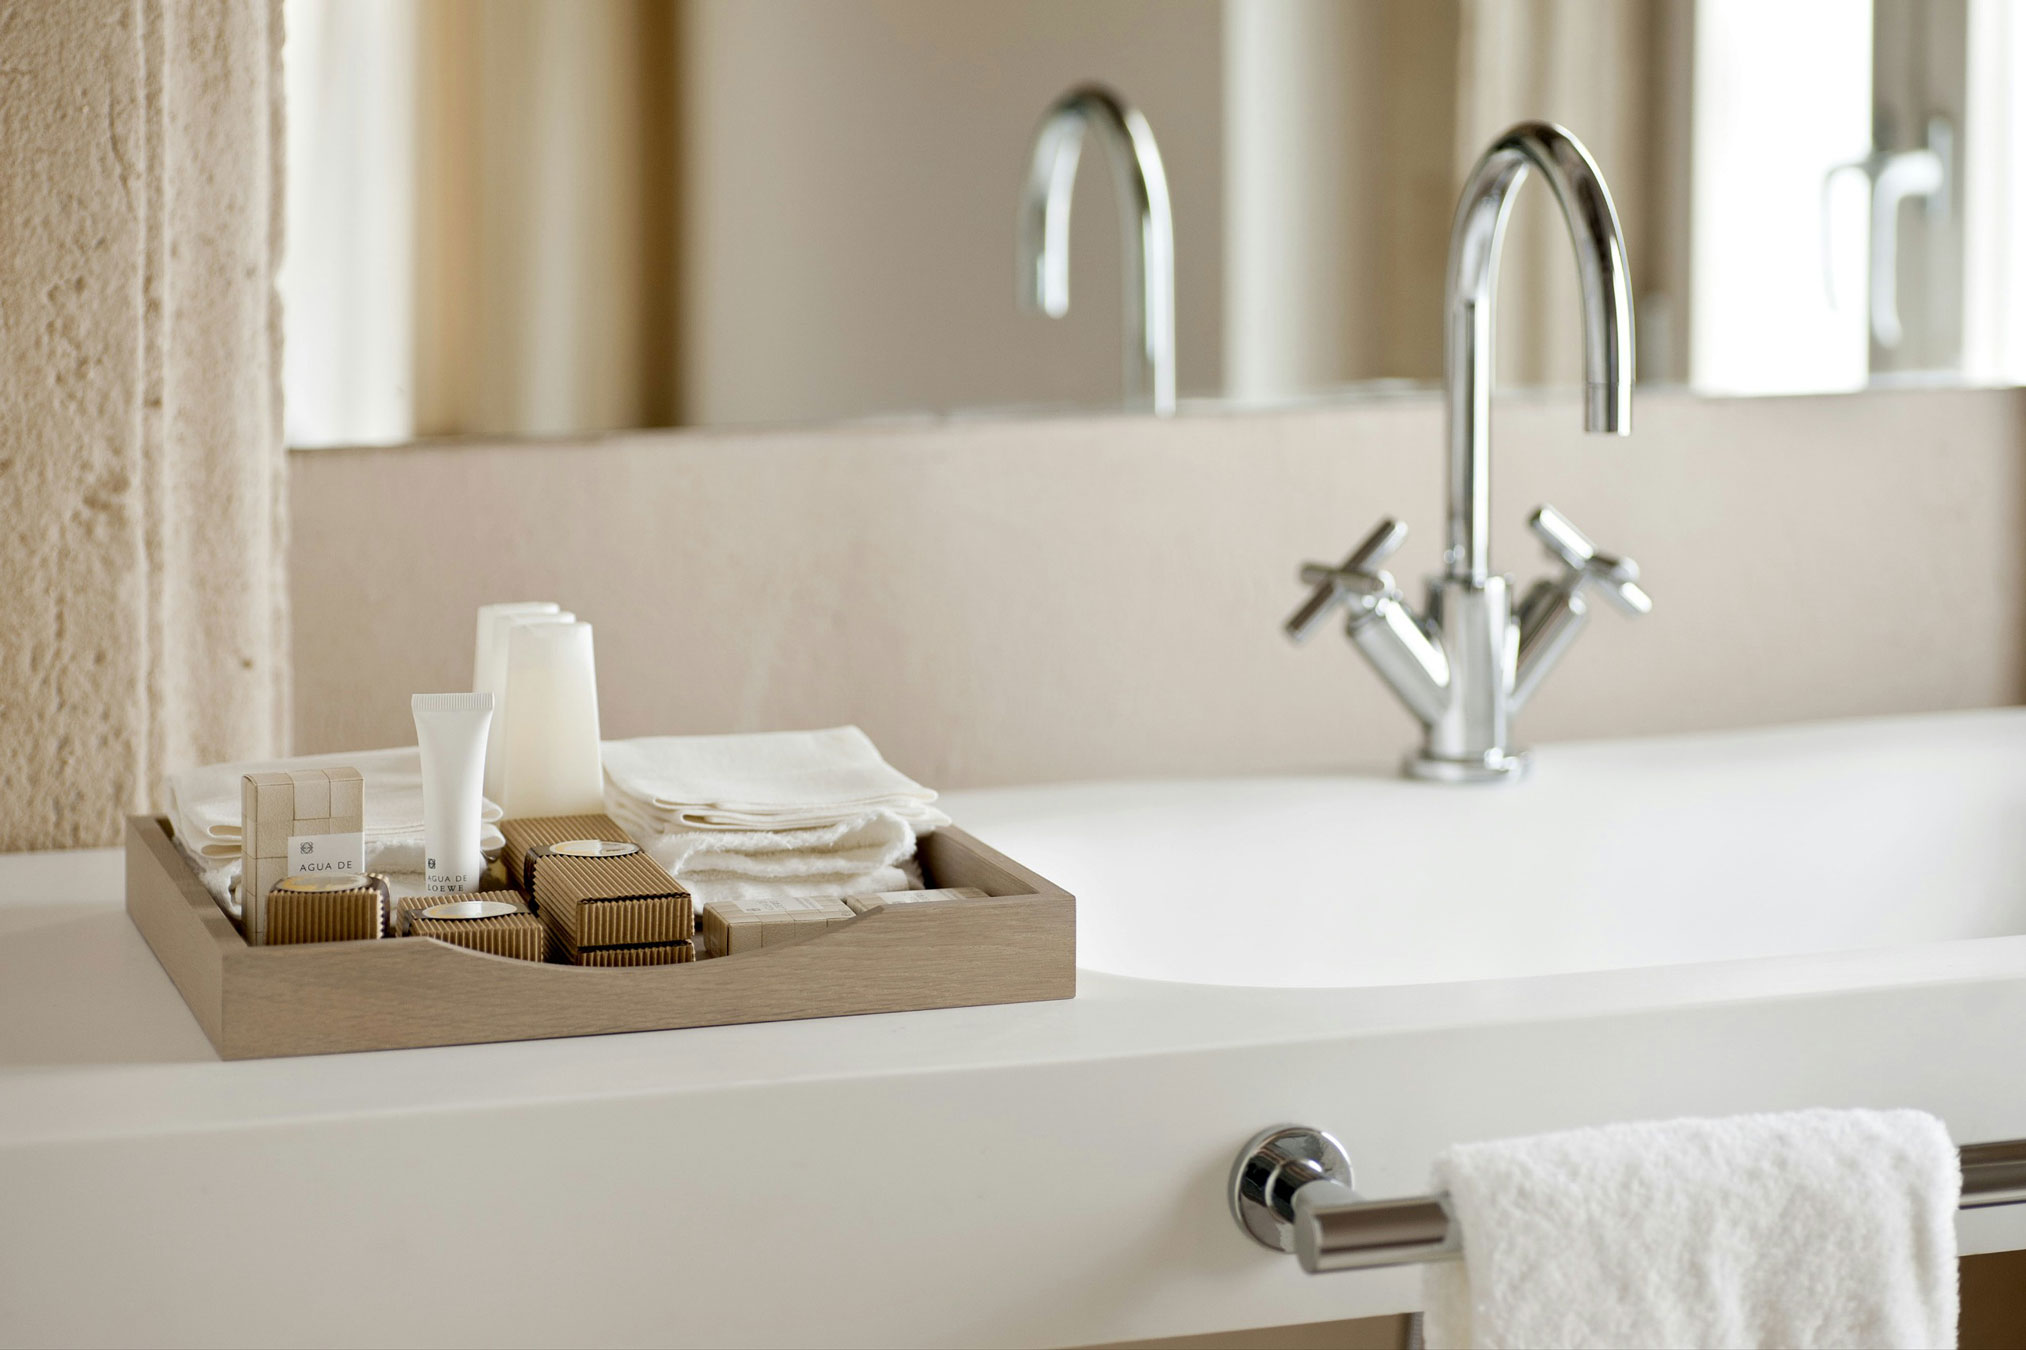 Decorative Bathroom Accessories For Hotel Project: Bathroom Makeover Into Home Spa